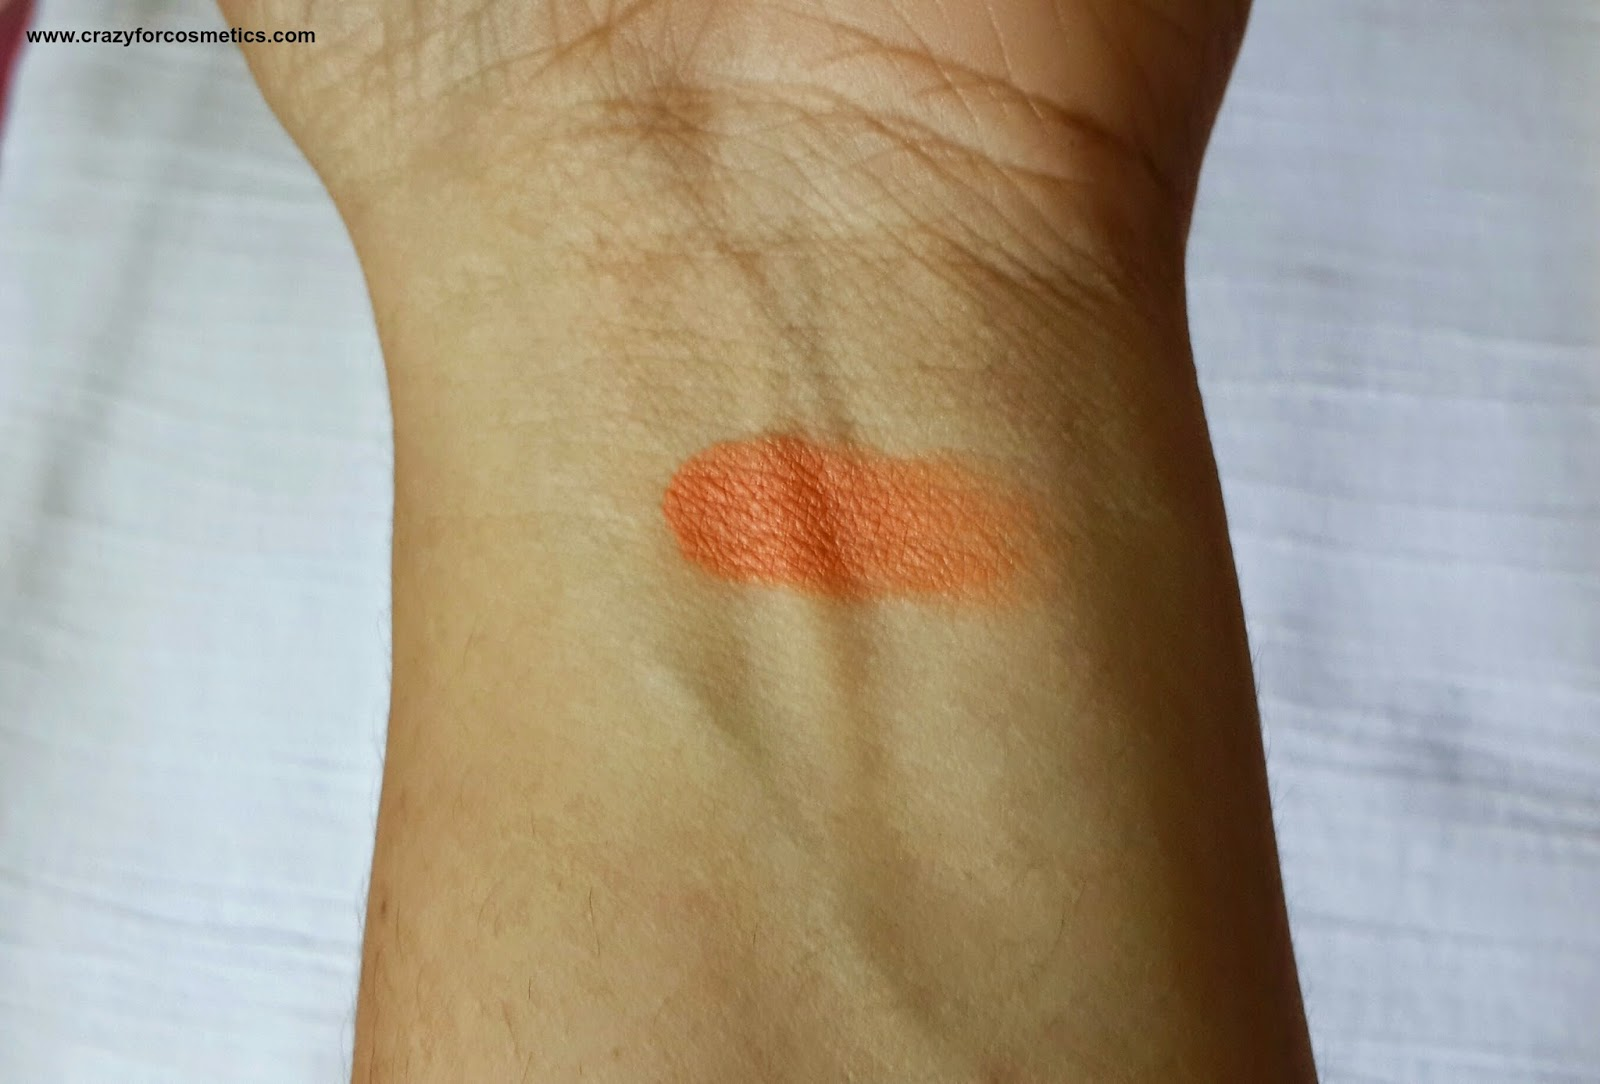 Kryolan Derma  color Camouflage Creme in D 30 review-Kryolan Derma  color Camouflage Creme in D 30 India-Kryolan Camouflage Creme orange corrector review-orange brightener for dark circles-Kryolan India Orange brightener for dark circles- hiding dark circles using color correction